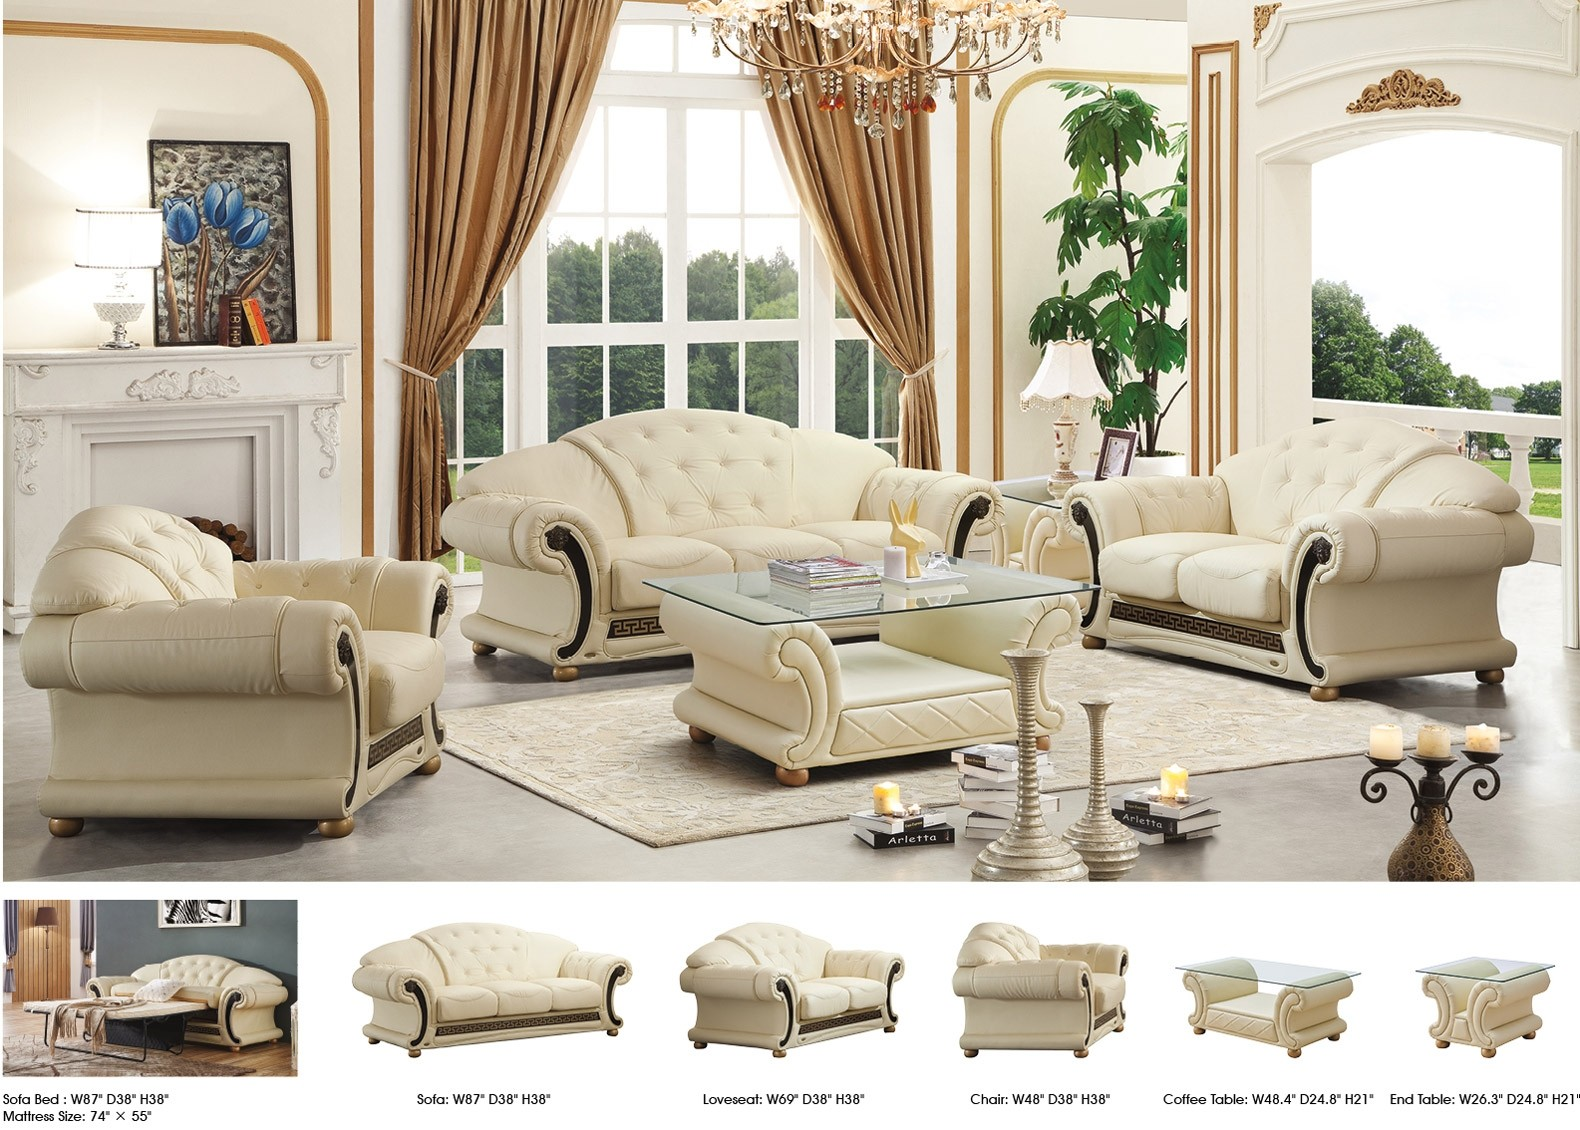 Apolo Living Room Set In Ivory Italian Leather By Esf Furniture